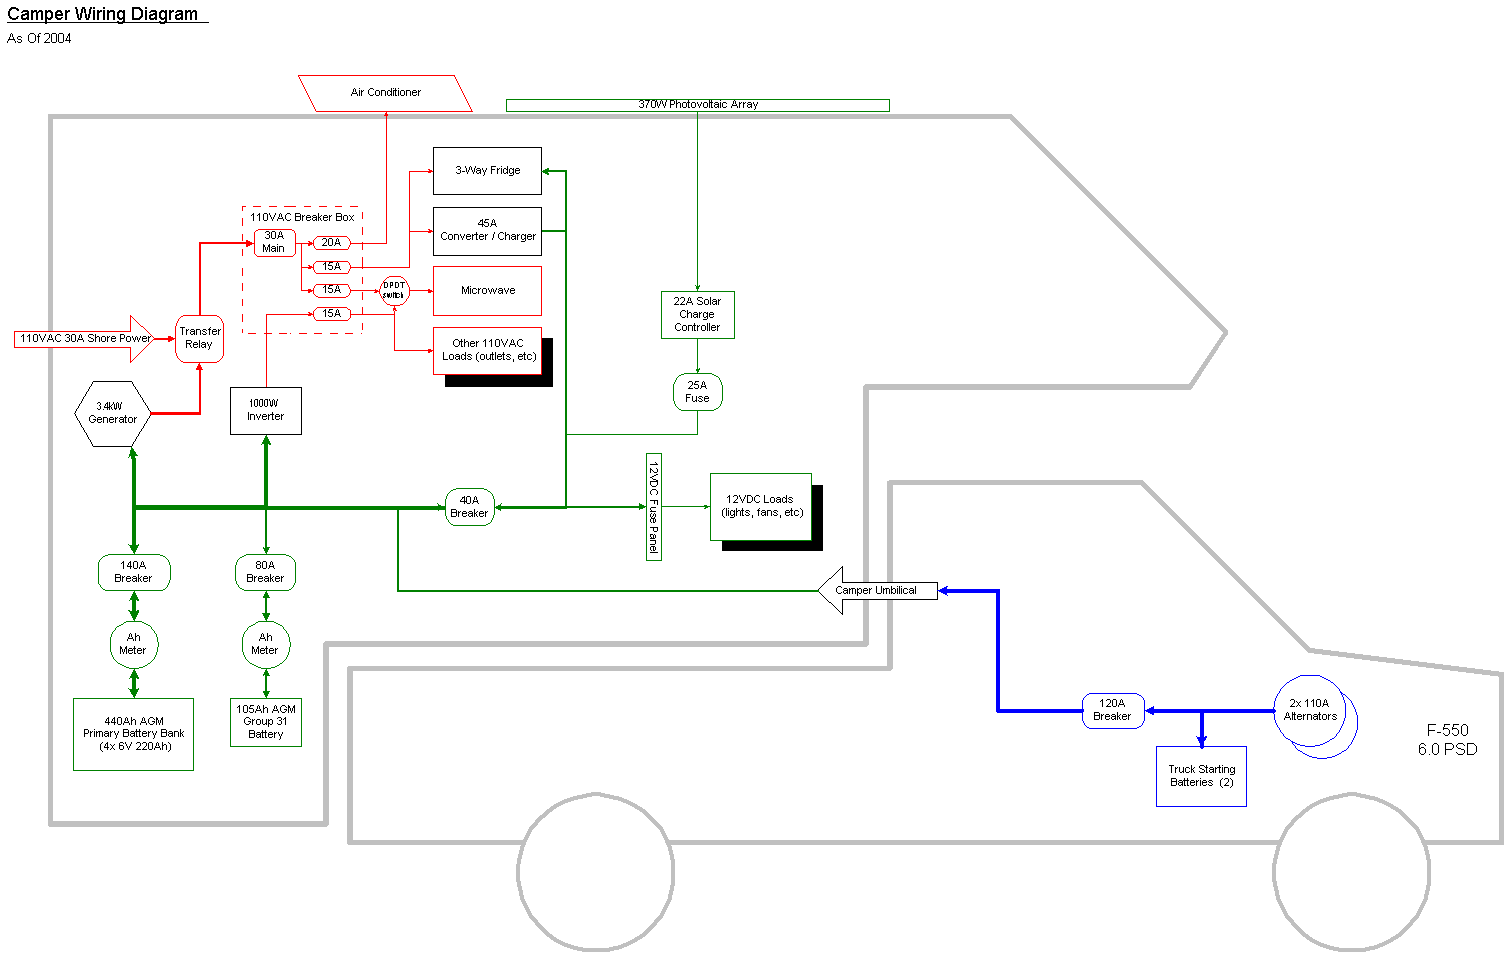 2004Diagram camper wiring diagram truck wiring diagrams instruction camper wiring harness diagram at bayanpartner.co